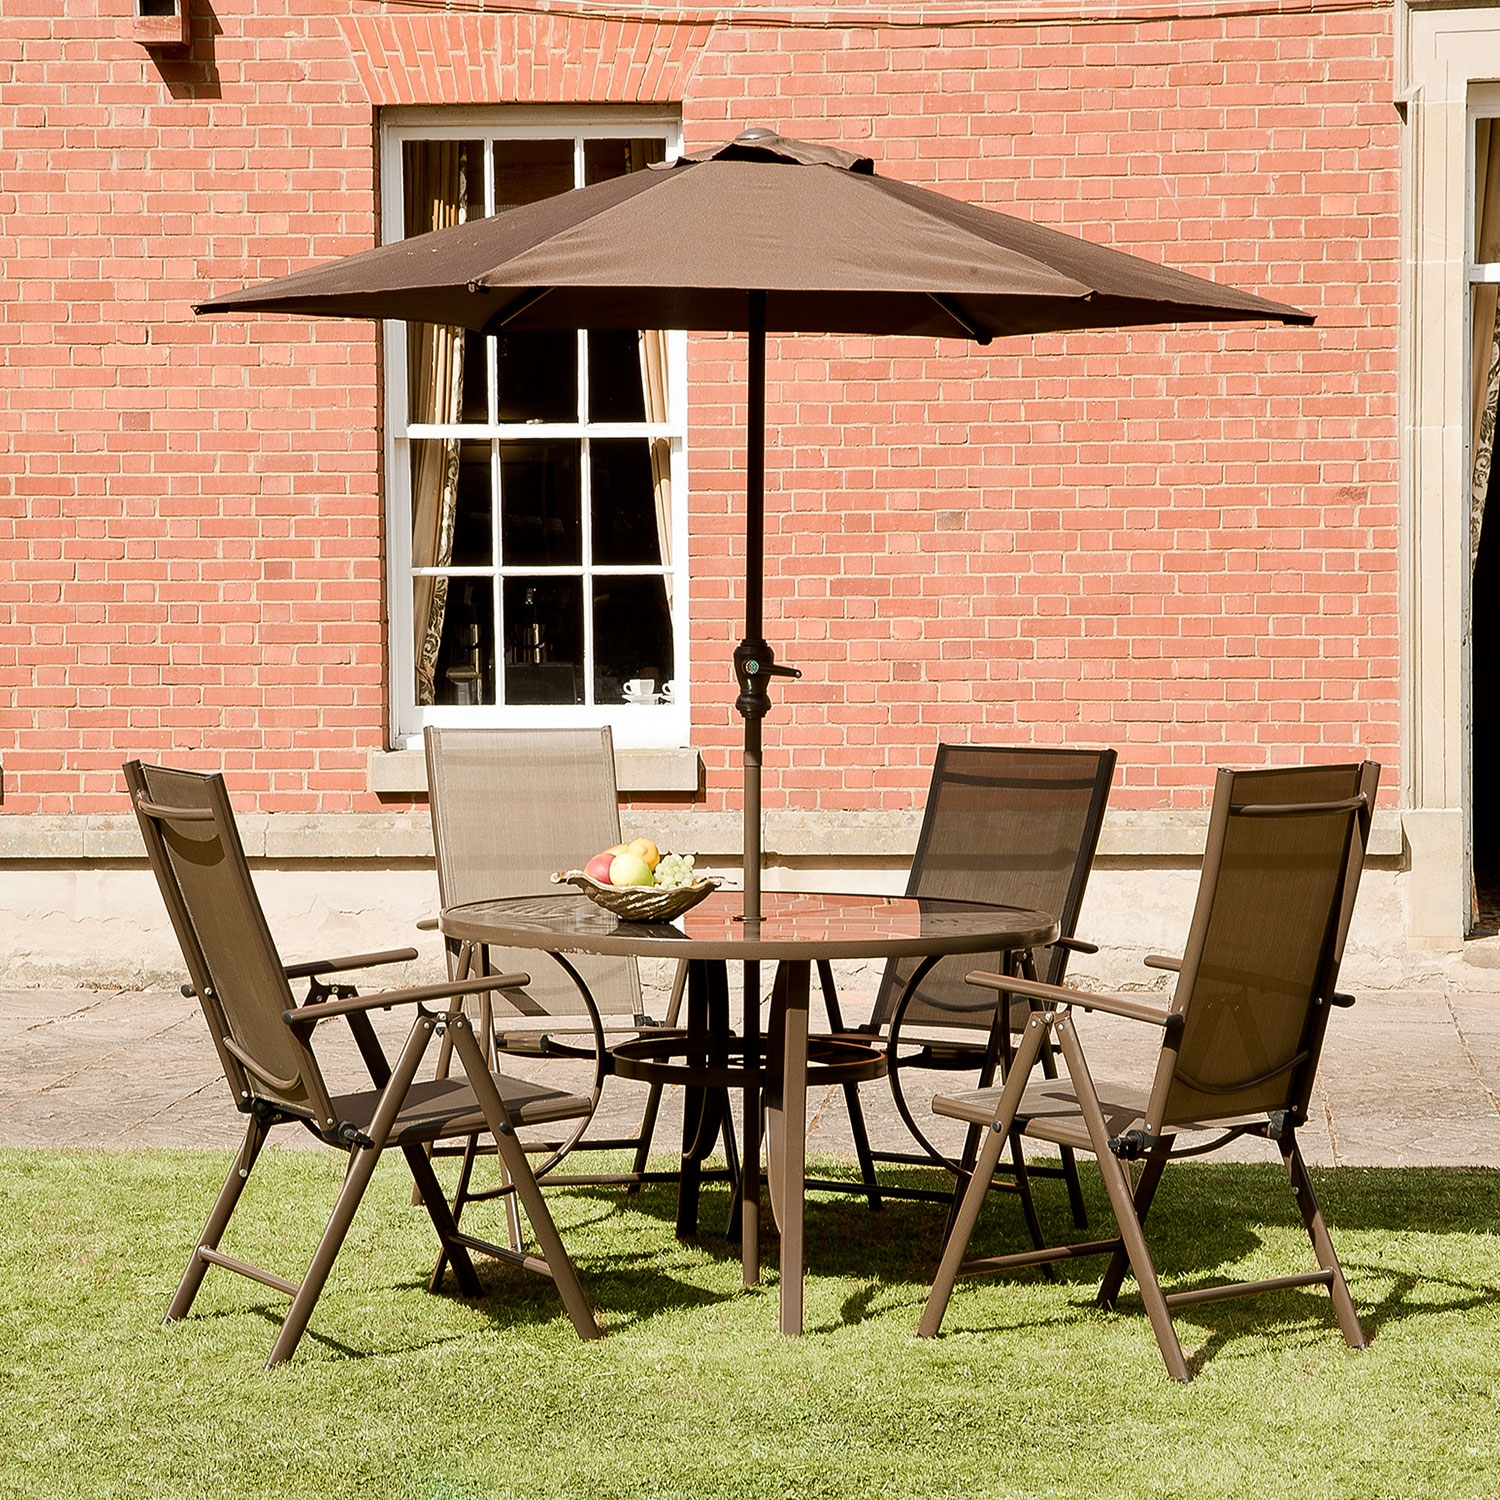 Image of 1.2m Santos Textelene 4 Seat Collection Round Copper Set